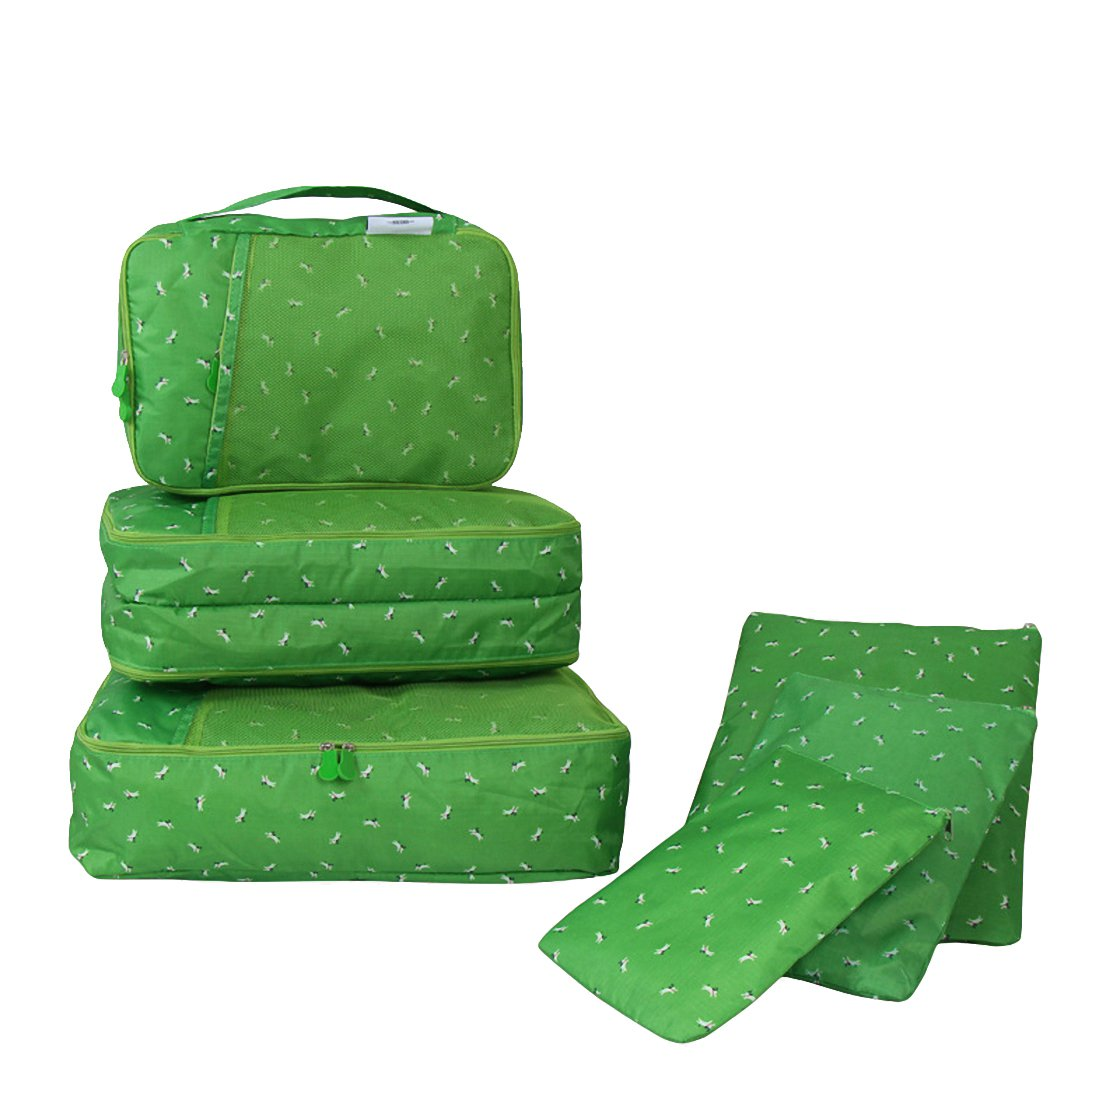 Travel Packing Organizers - Clothes Cubes Shoe Bags Laundry Pouches For Suitcase Luggage, Storage Organizer 6 Set Color Green